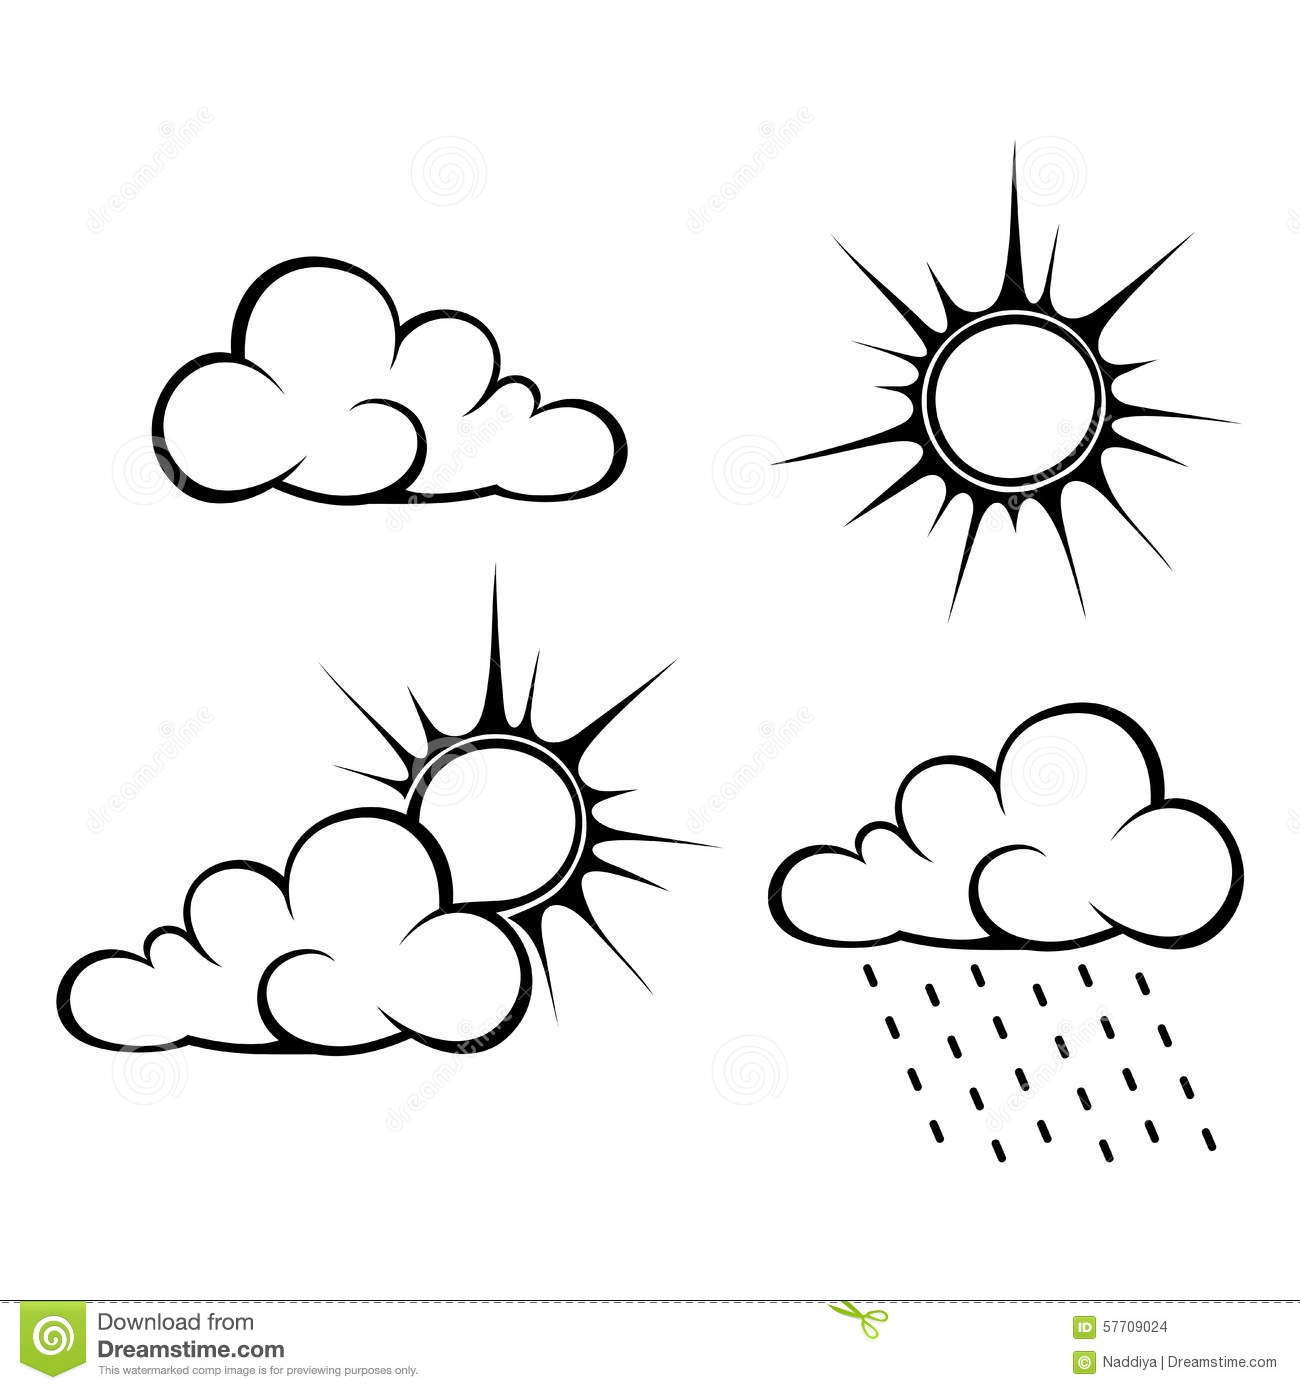 La Methode De Dessin Dessiner Le Corps Humain Un Parcours En 4 Etapes moreover Stock Illustration Black Contours Clouds Sun Vector Illustration Weather Symbols Rain Image57709024 furthermore Autocollant Deco Portugal Continent Silhouette Contour 27350 moreover Illustration Stock Cours De Dessin  ment Dessiner Un Coeur Image65352262 also 305892999670073241. on contour car